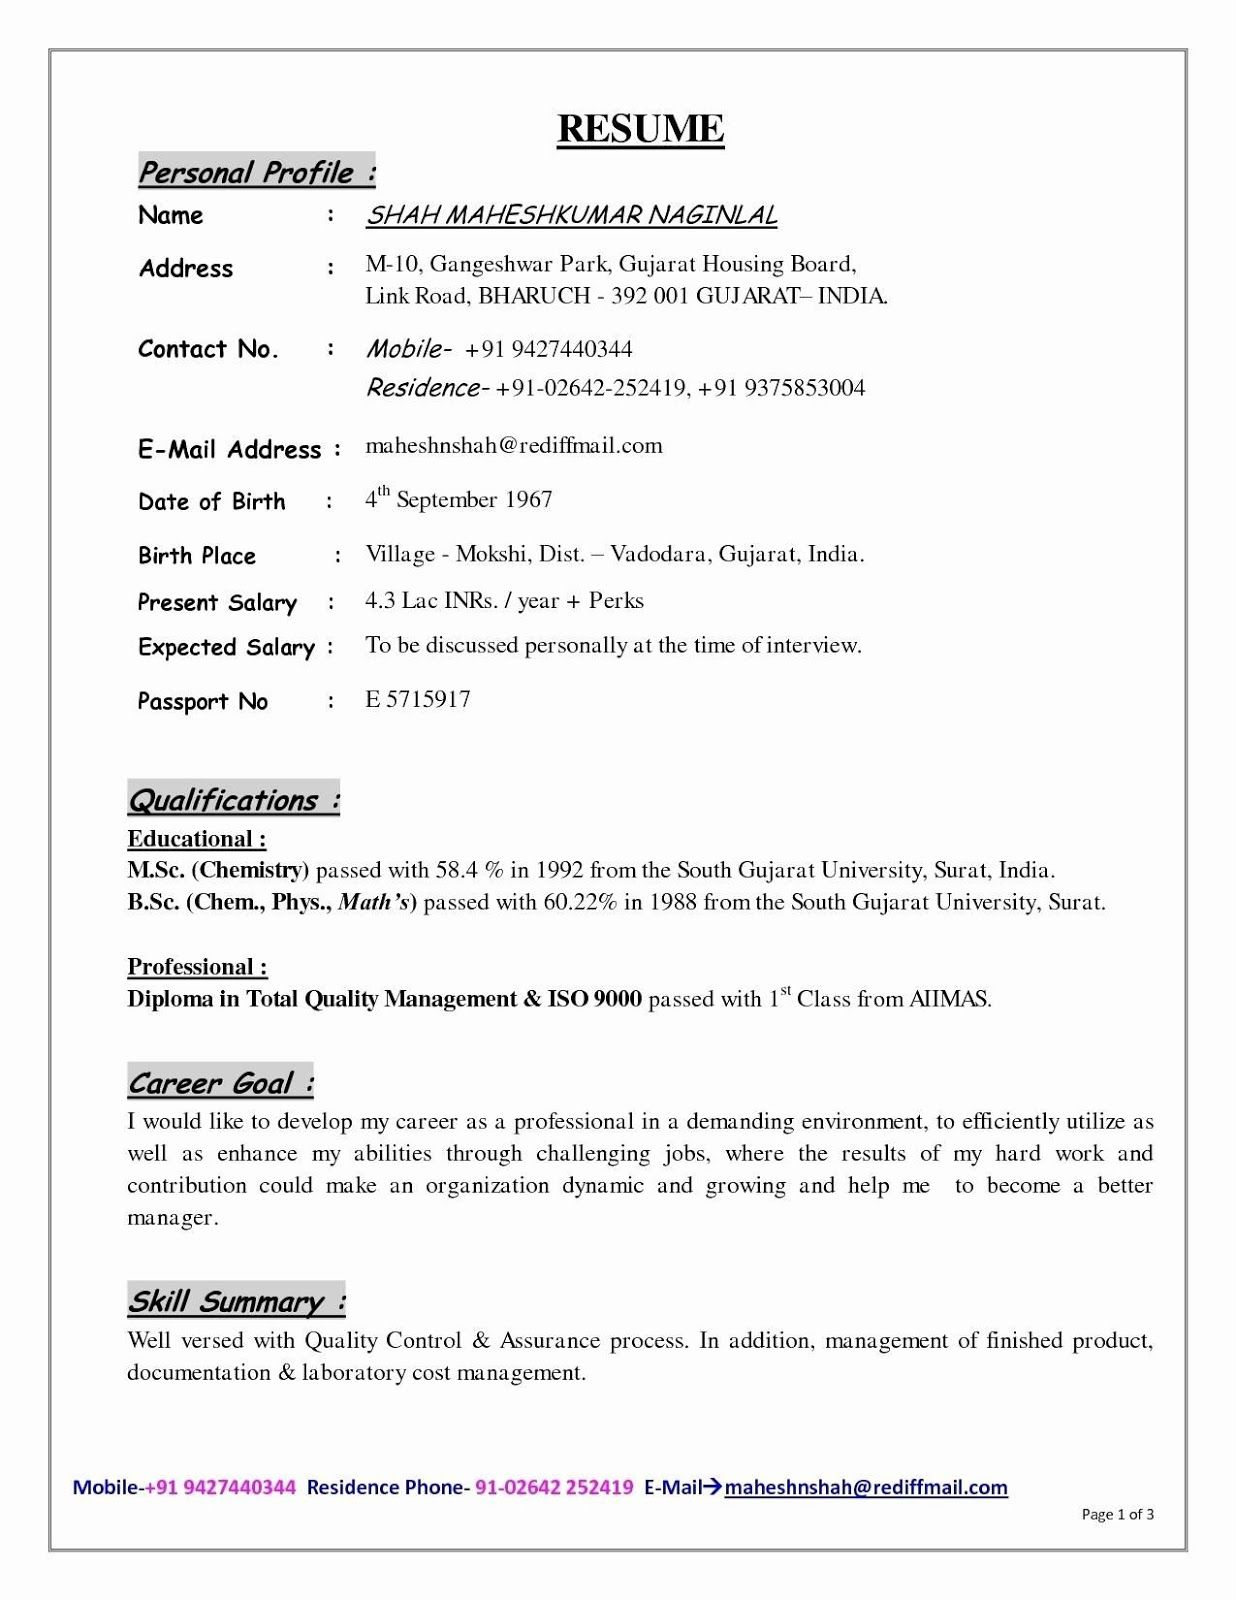 Mechanical Engineering Cv Format Mechanical Engineering Cv Format For Fresher Pdf Mechan Cover Letter For Resume Resume Profile Examples Sample Resume Format